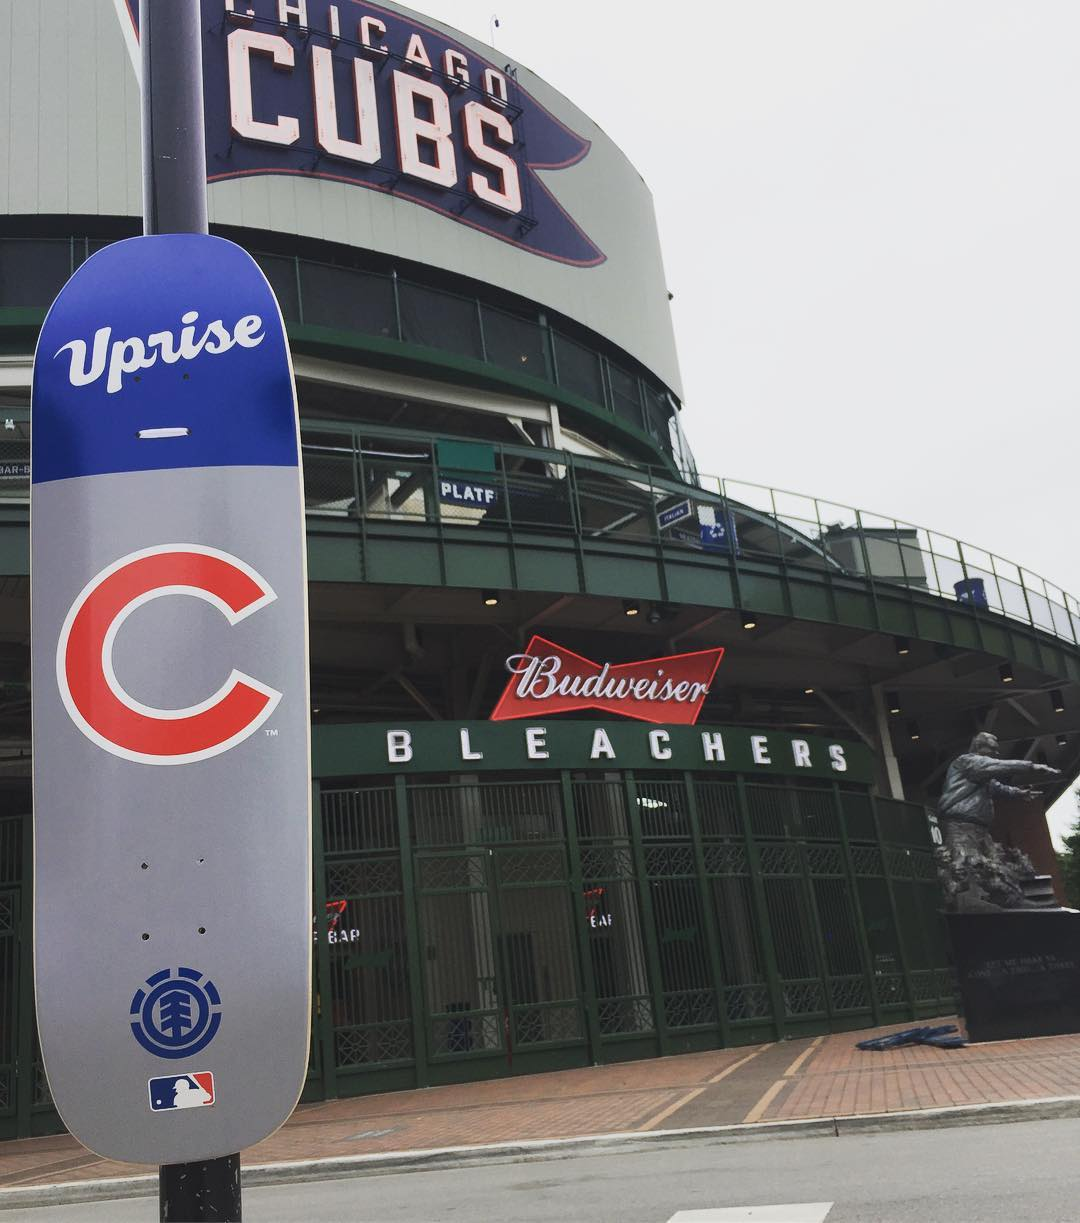 @upriseskateshop is geared up for good times in the windy city, new cruiser shape in stock now, give 'em a follow to find out how to get one >>> @cubs #elementxmlb #supportyourlocalskateshop